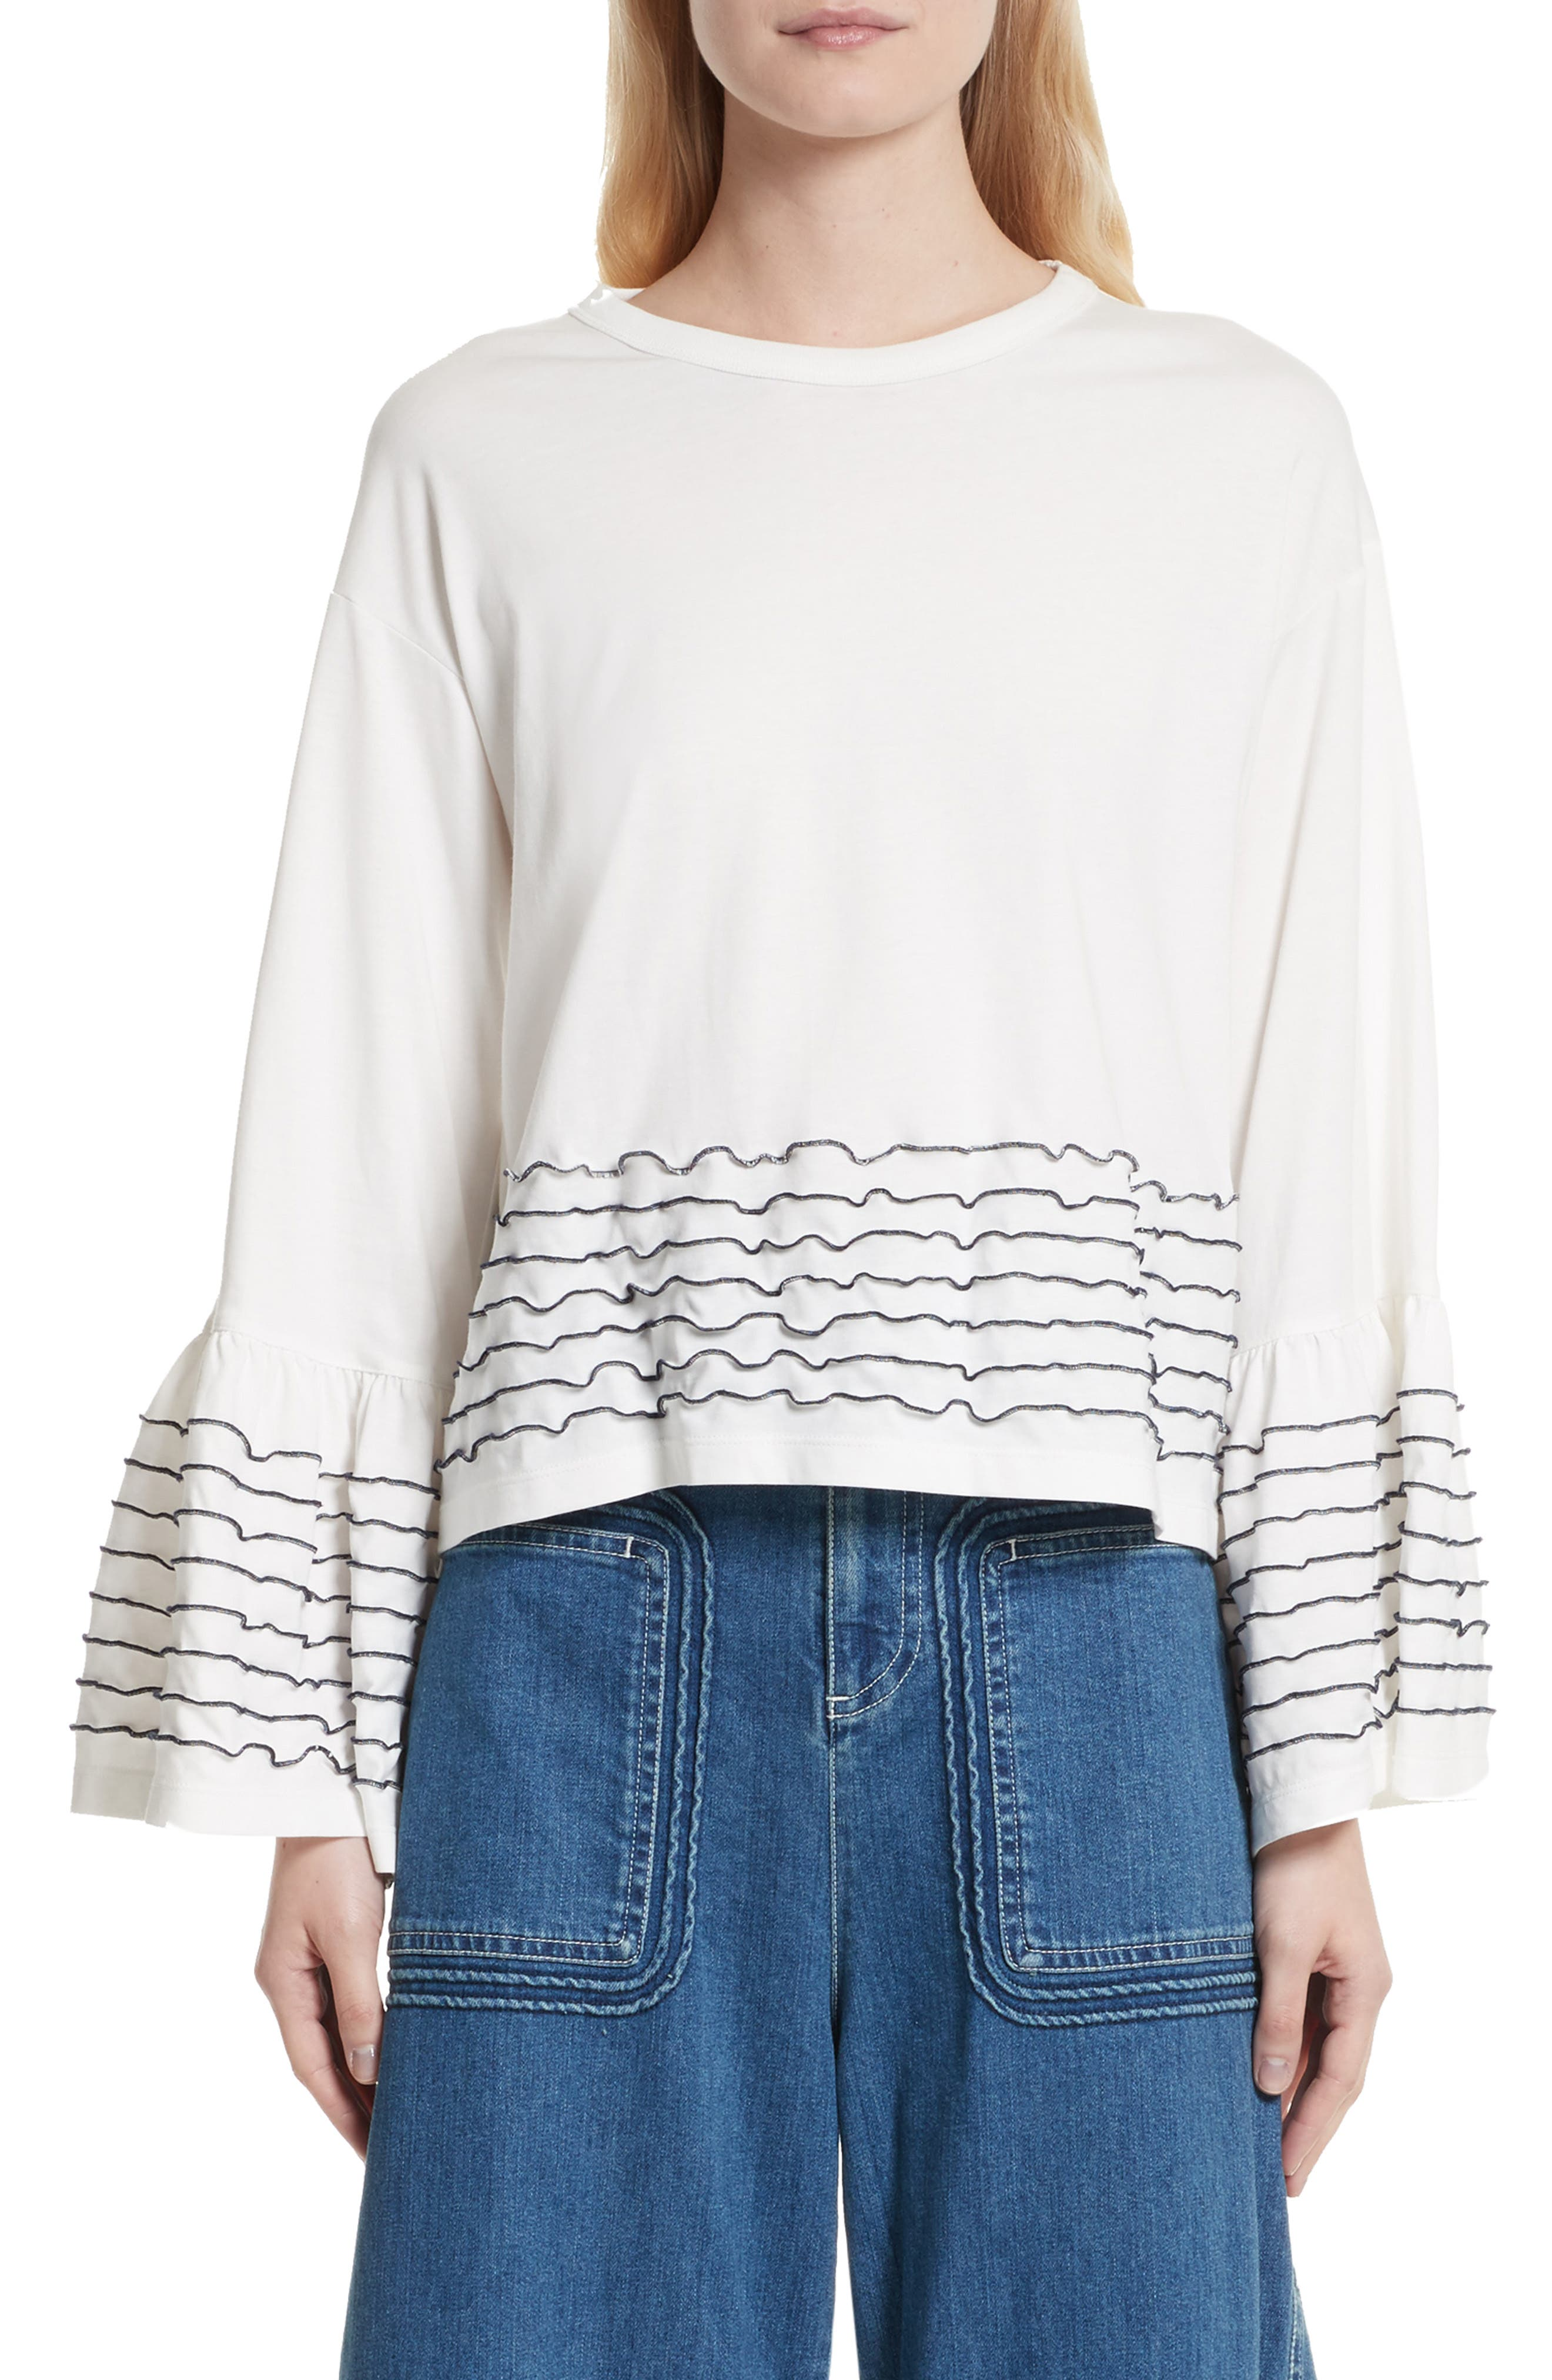 Main Image - See by Chloé Stitched Cotton Top